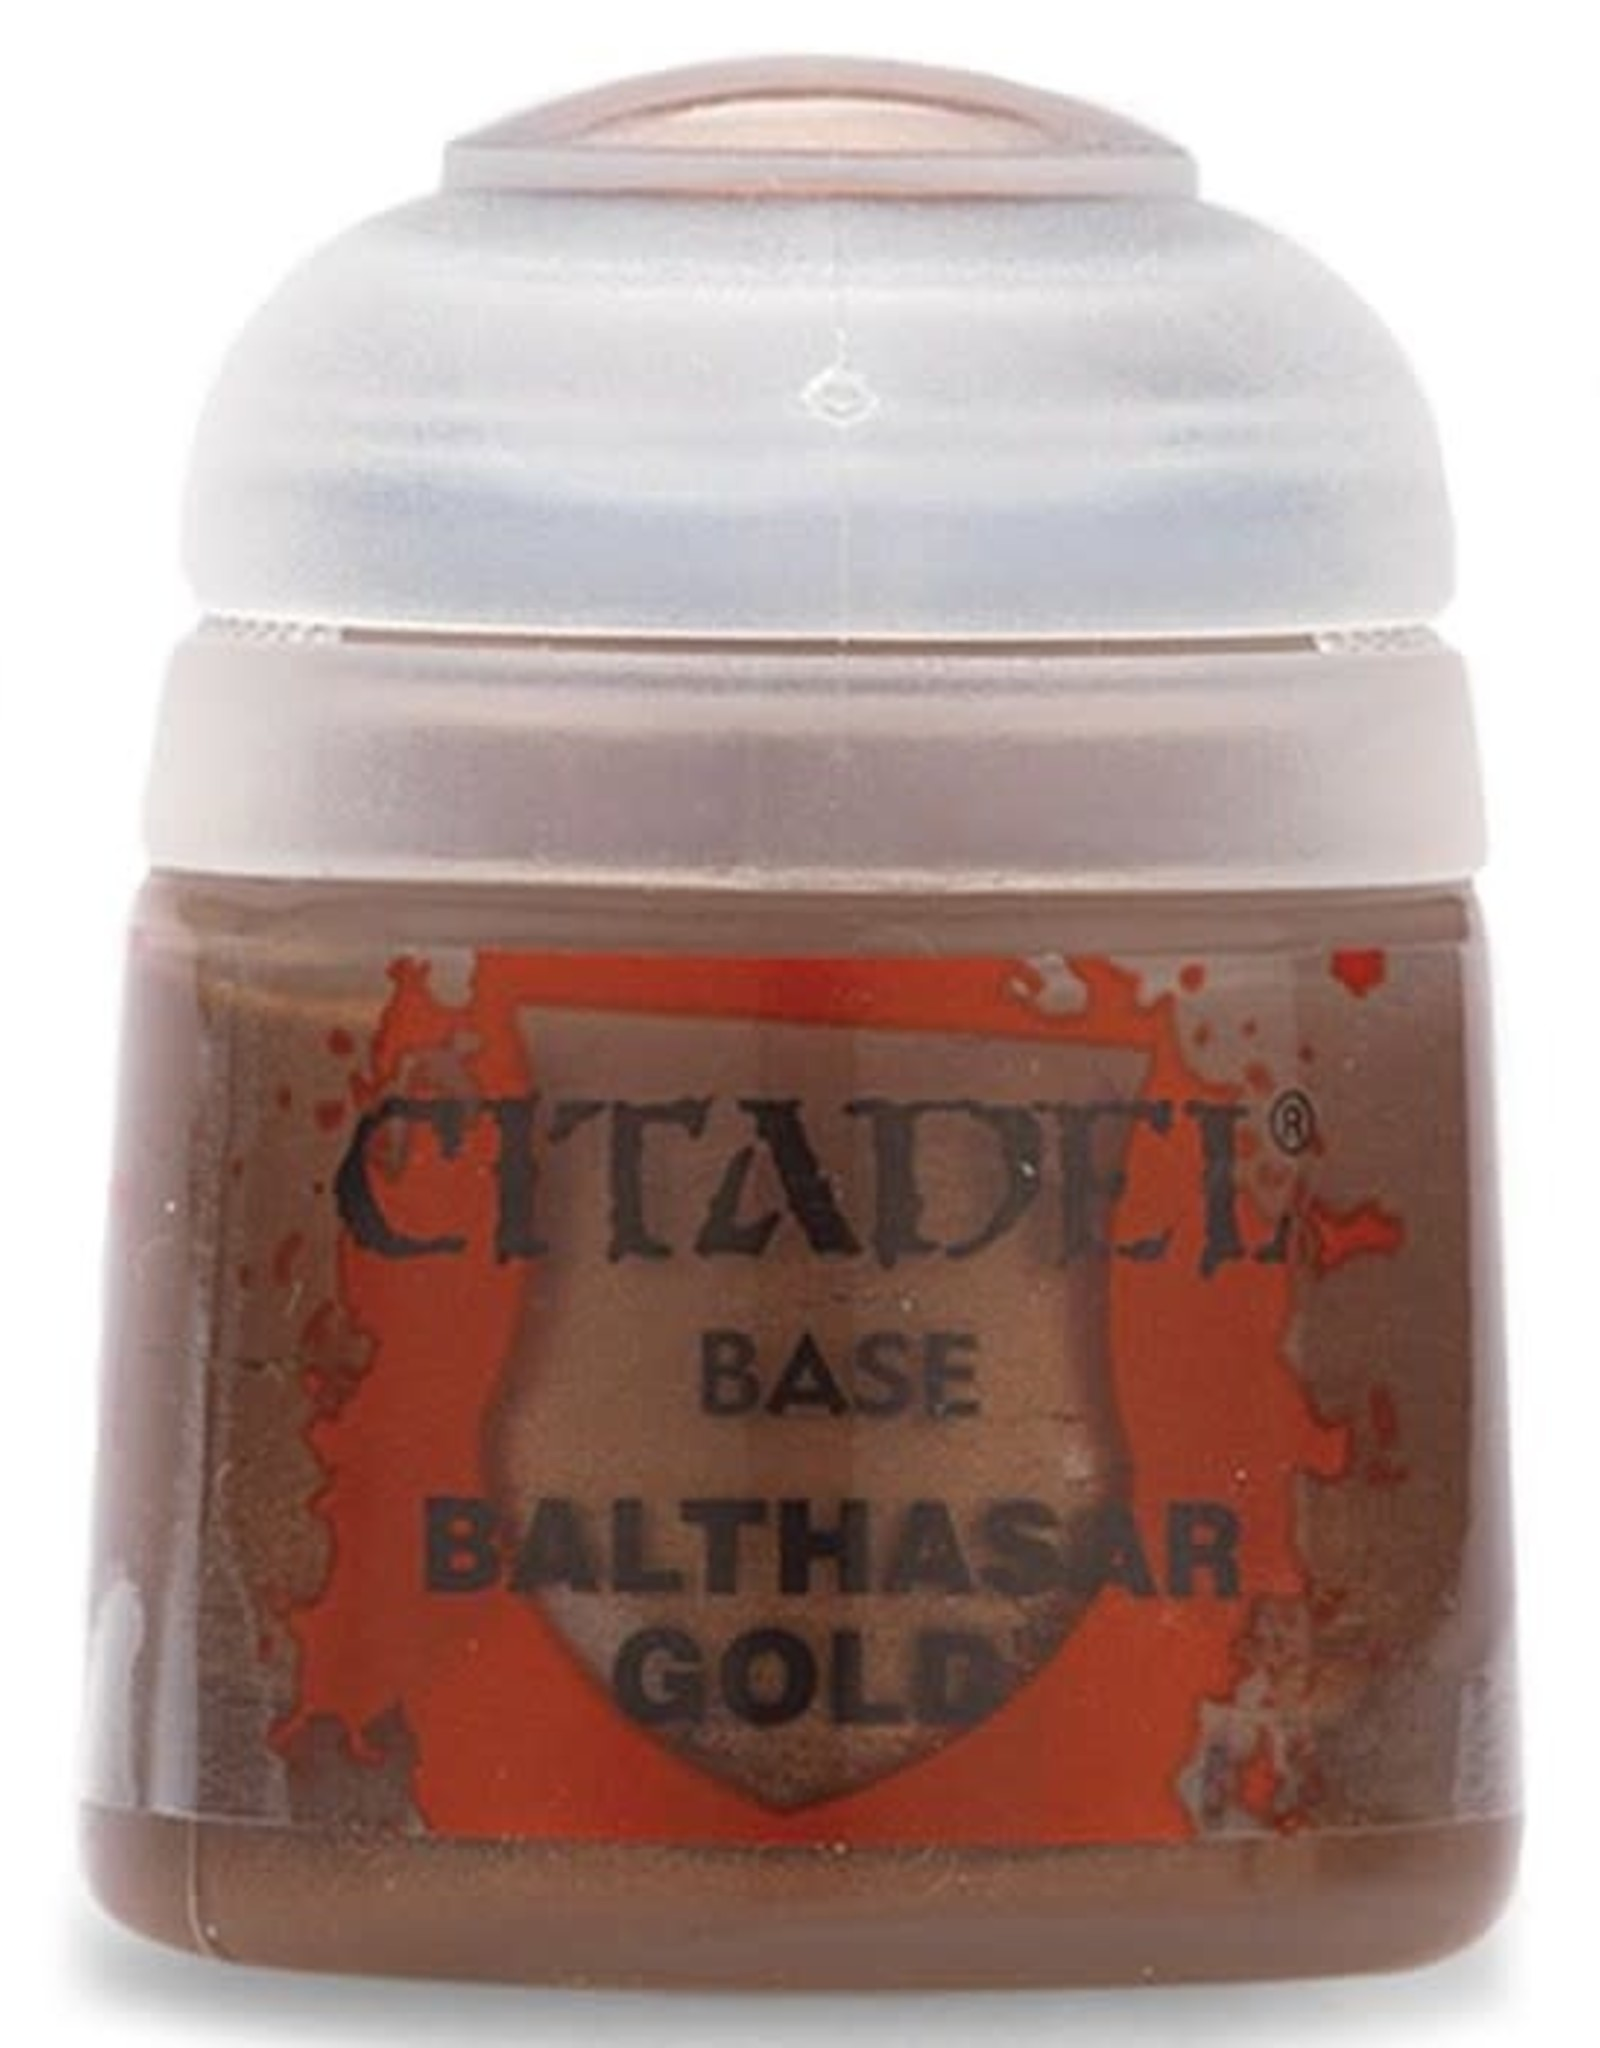 Games Workshop Citadel Paint: Base - Balthasar Gold